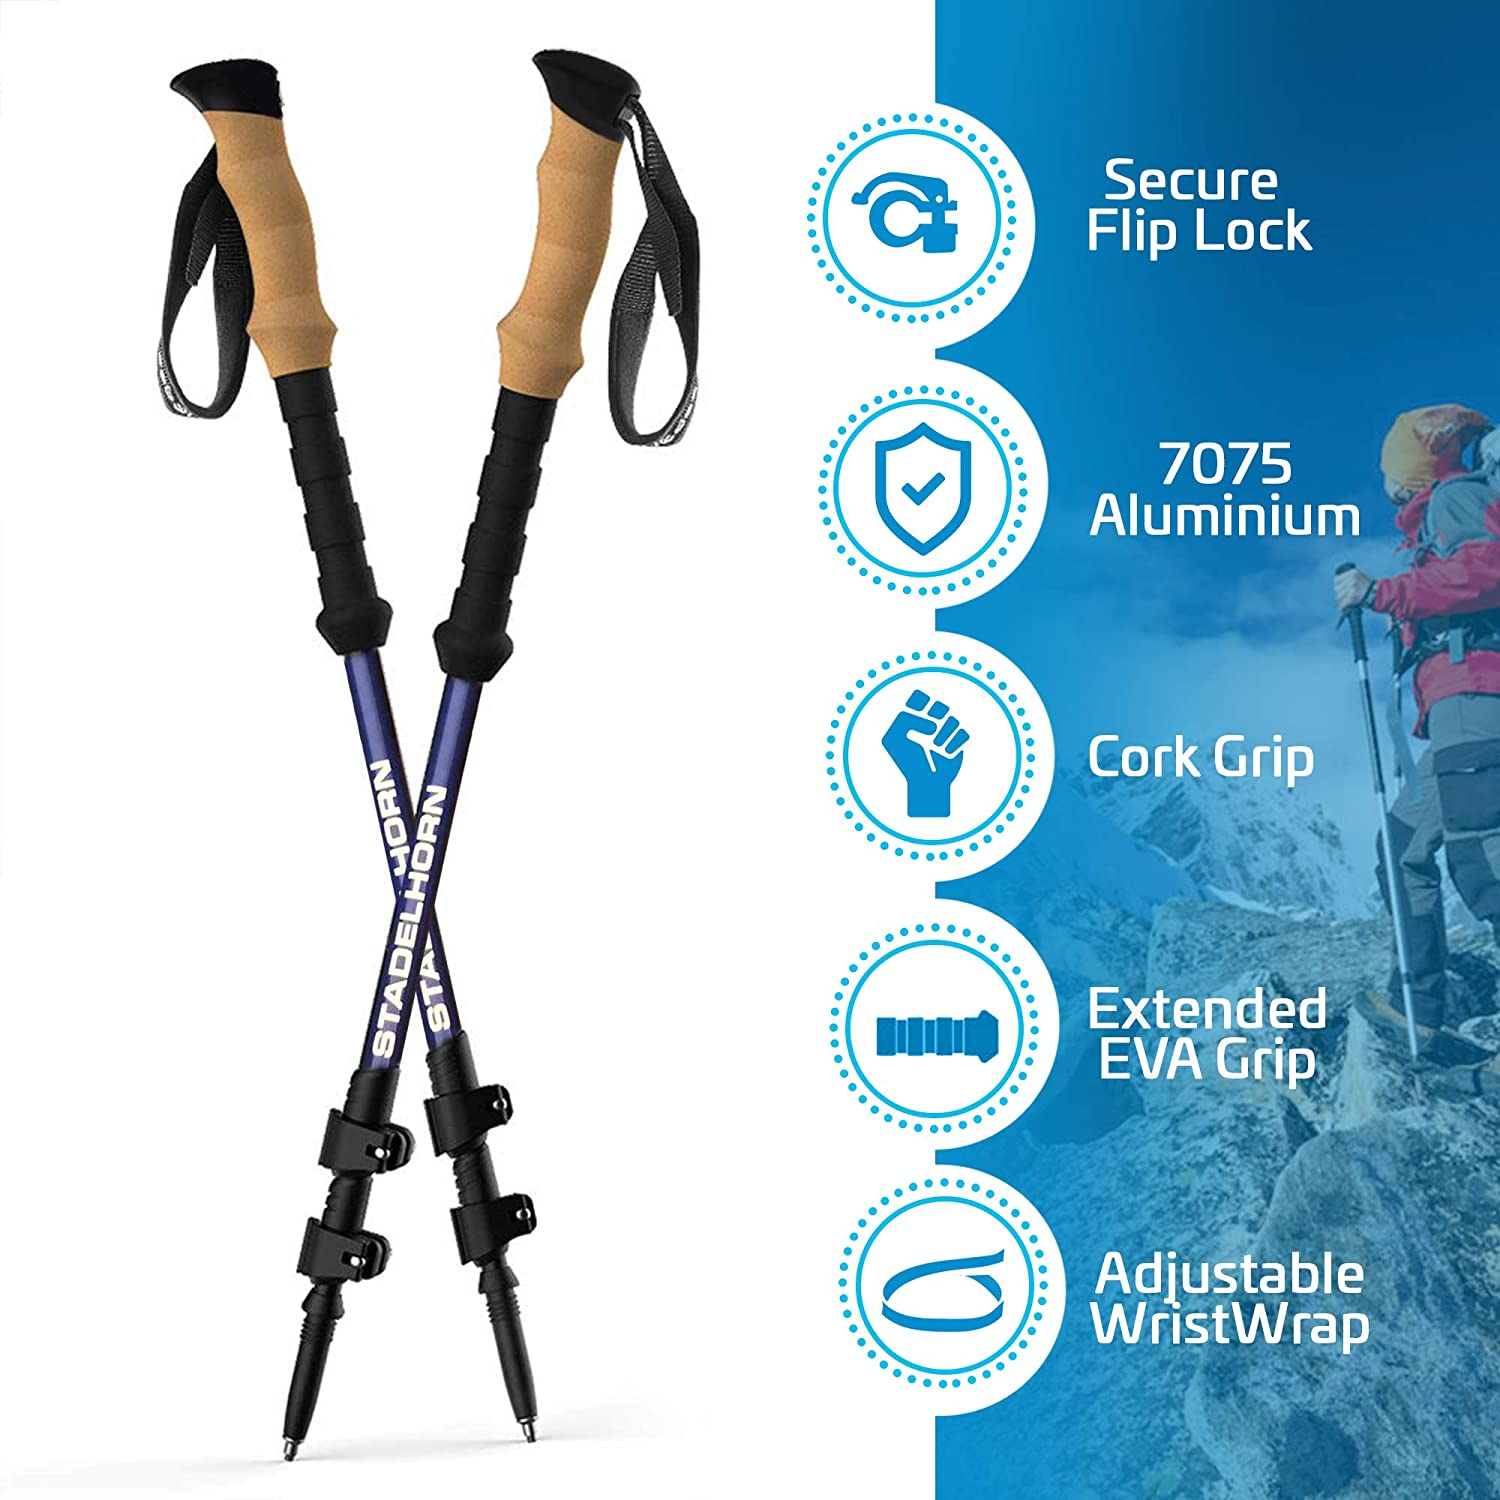 Stadelhorn – Hiking Trekking Poles Collapsible Adjustable Aluminum Telescopic Walking Sticks with Quick Release Locks, Cork Ergonomic Grips, Multiple Attachments Carrying Bag – 2 pcs Set